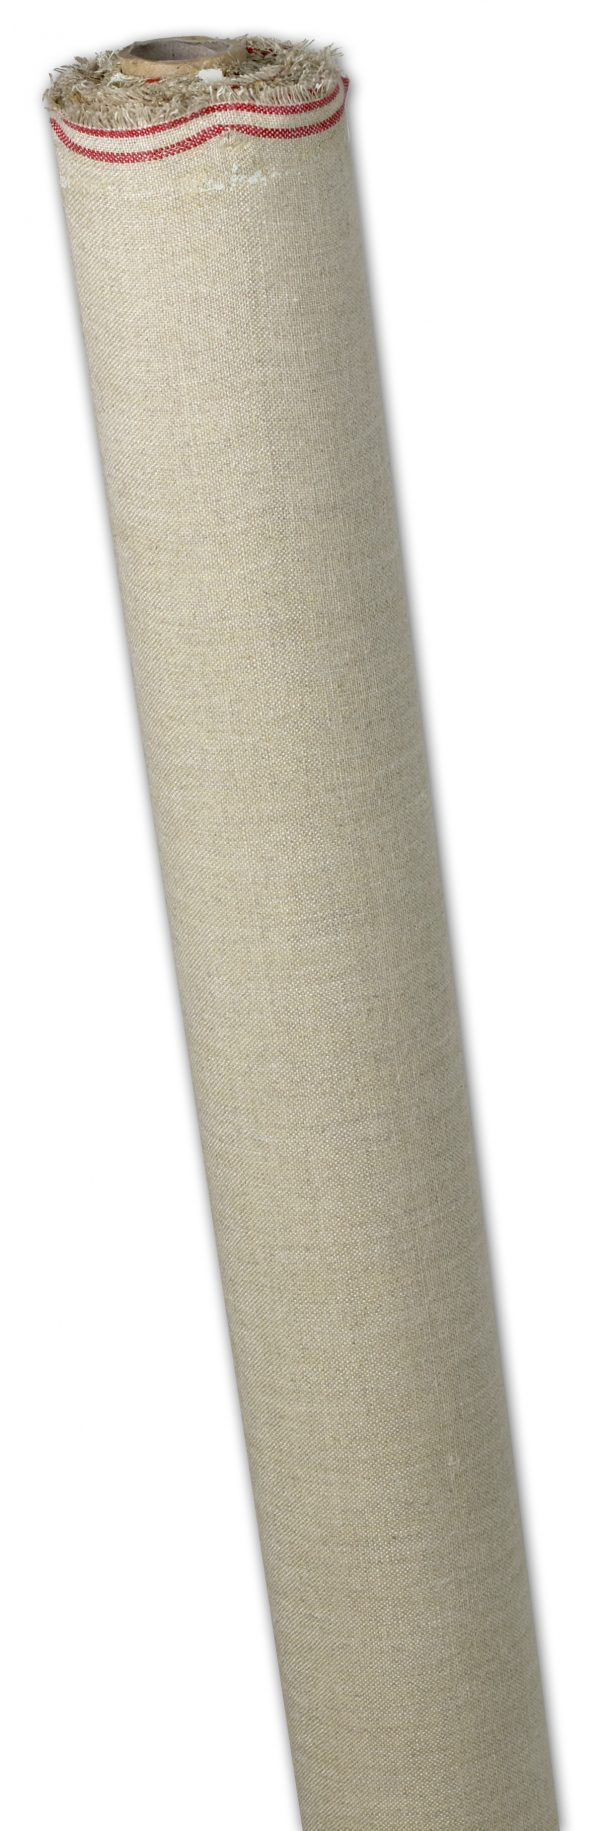 """6yds (5.49mtrs) x 54"""" (1.37mtrs) Linen Oil Primed Kent Quality Canvas Roll"""